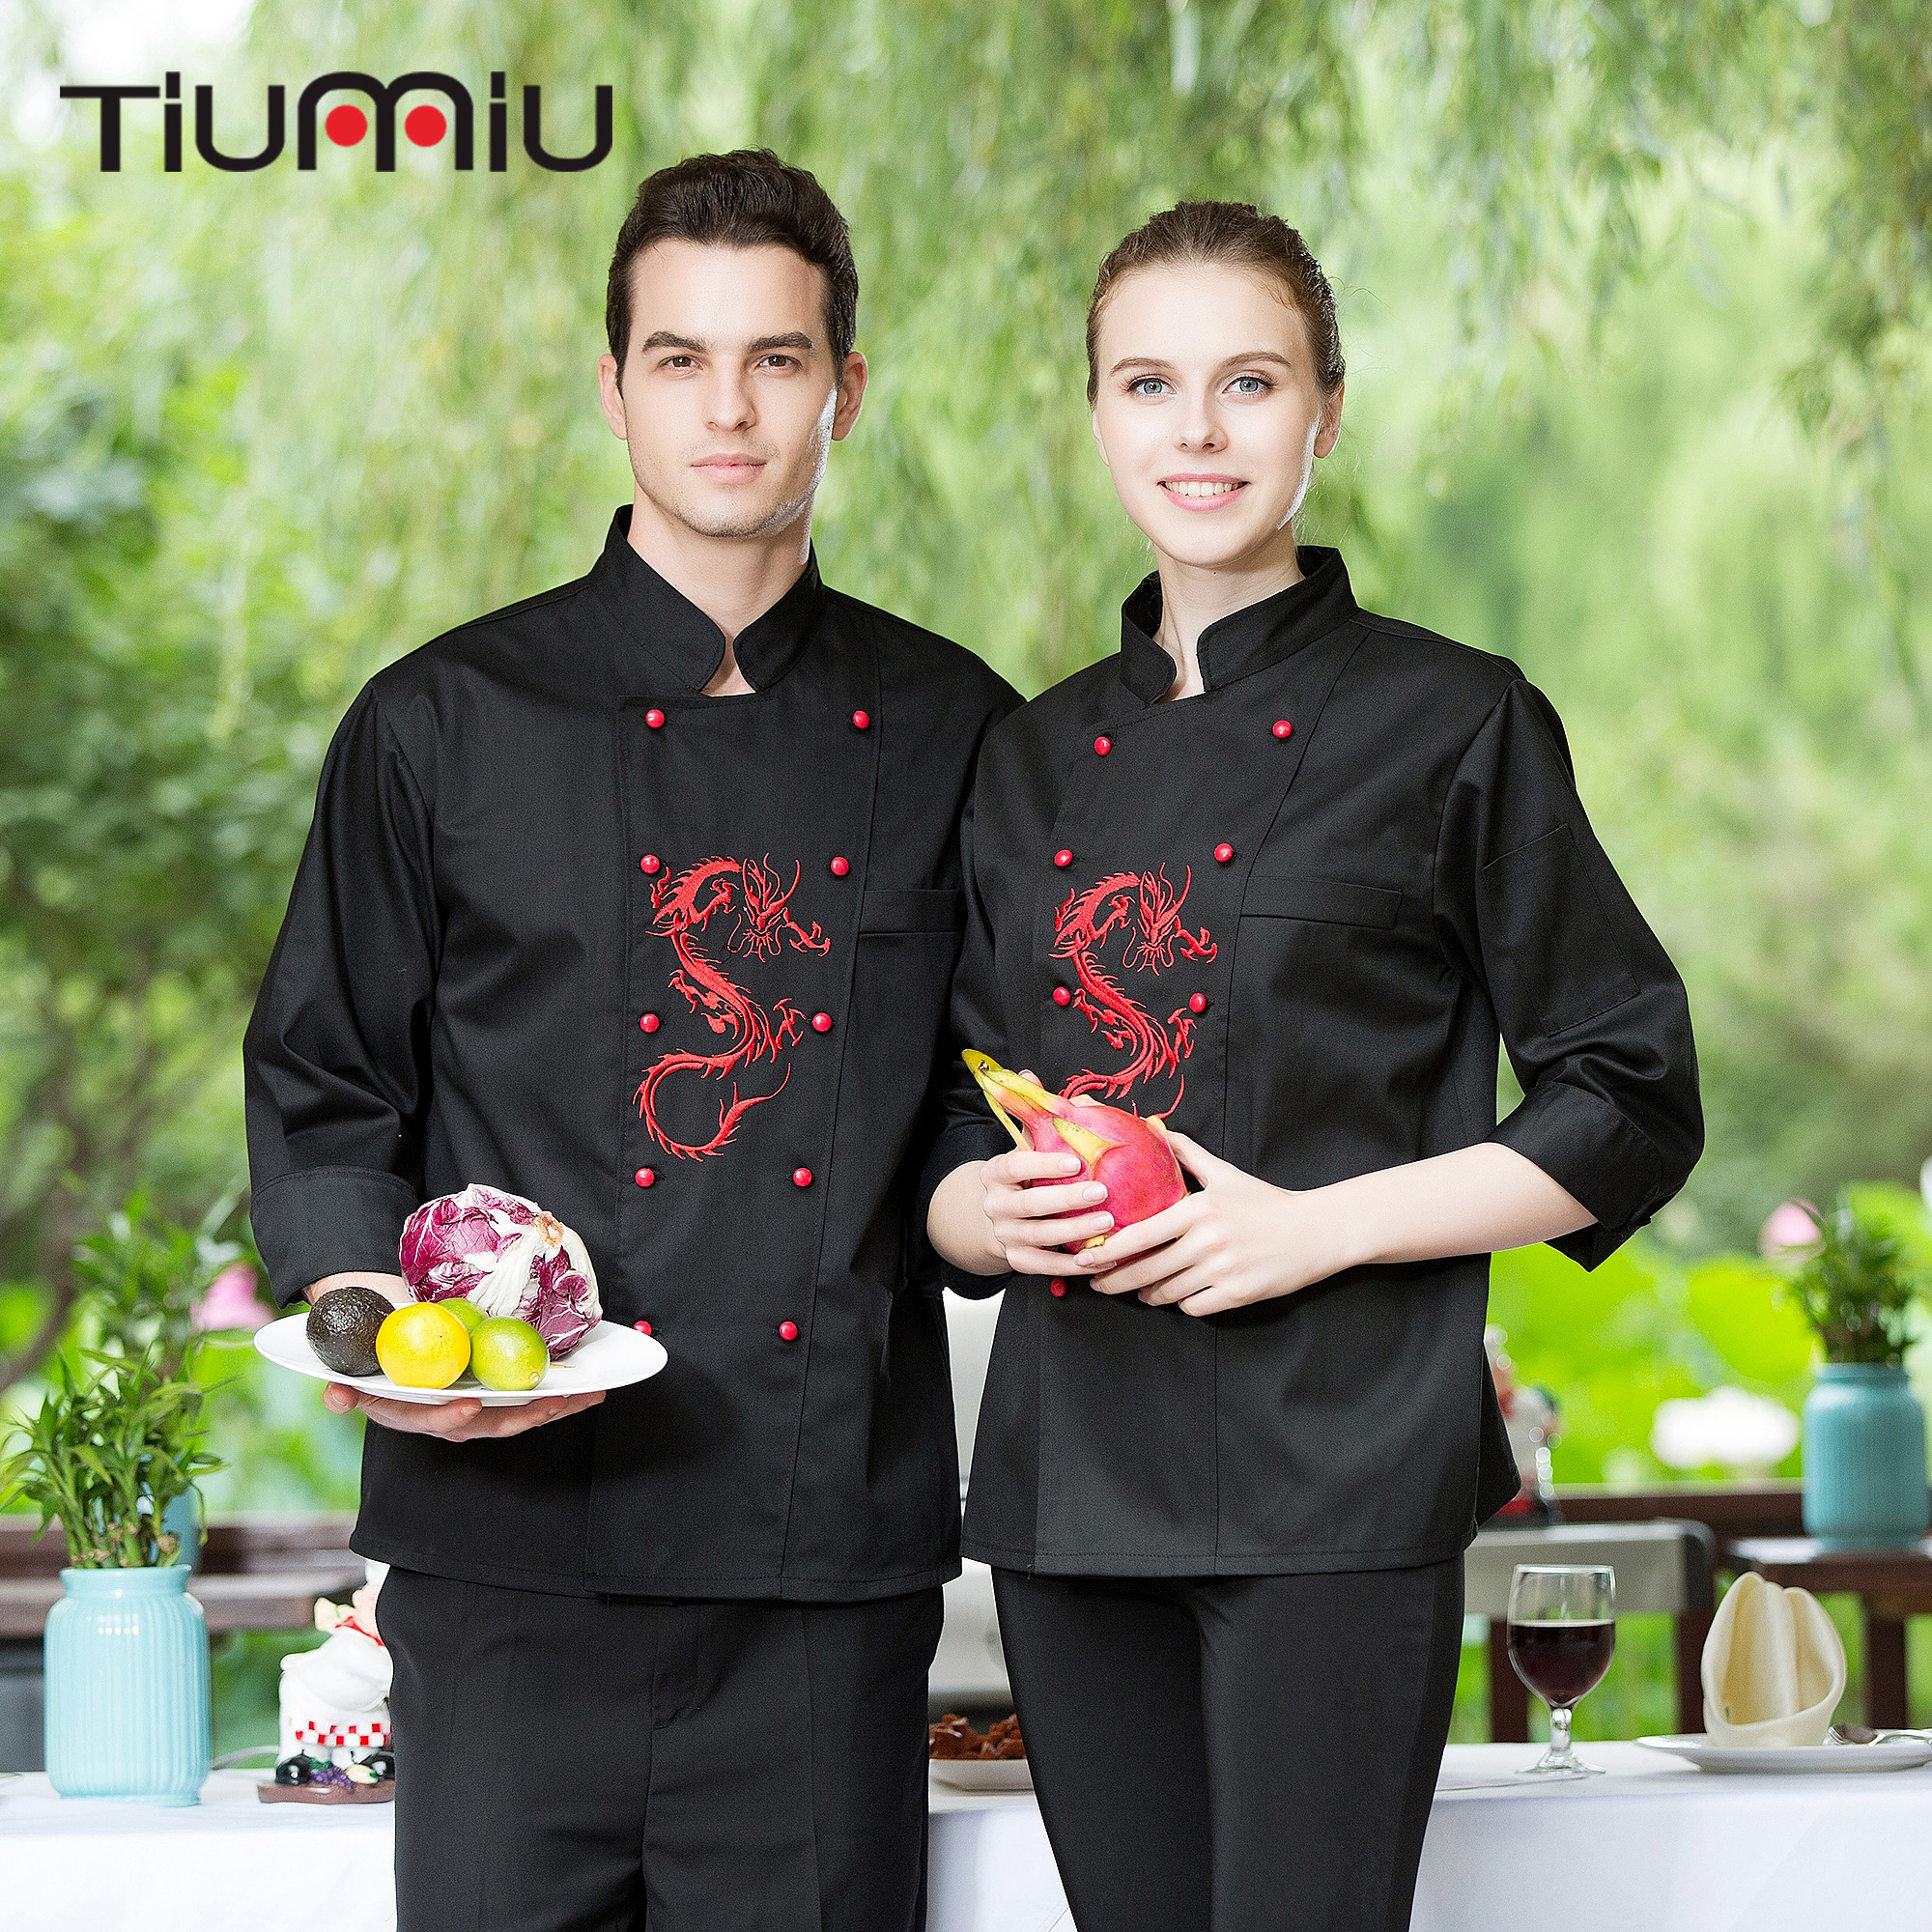 4XL Women Kitchen Cook Wear Embroidery Dragon Double-breasted Uniform Restaurant Bakery Chef Jackets & Aprons Workwear Wholesale